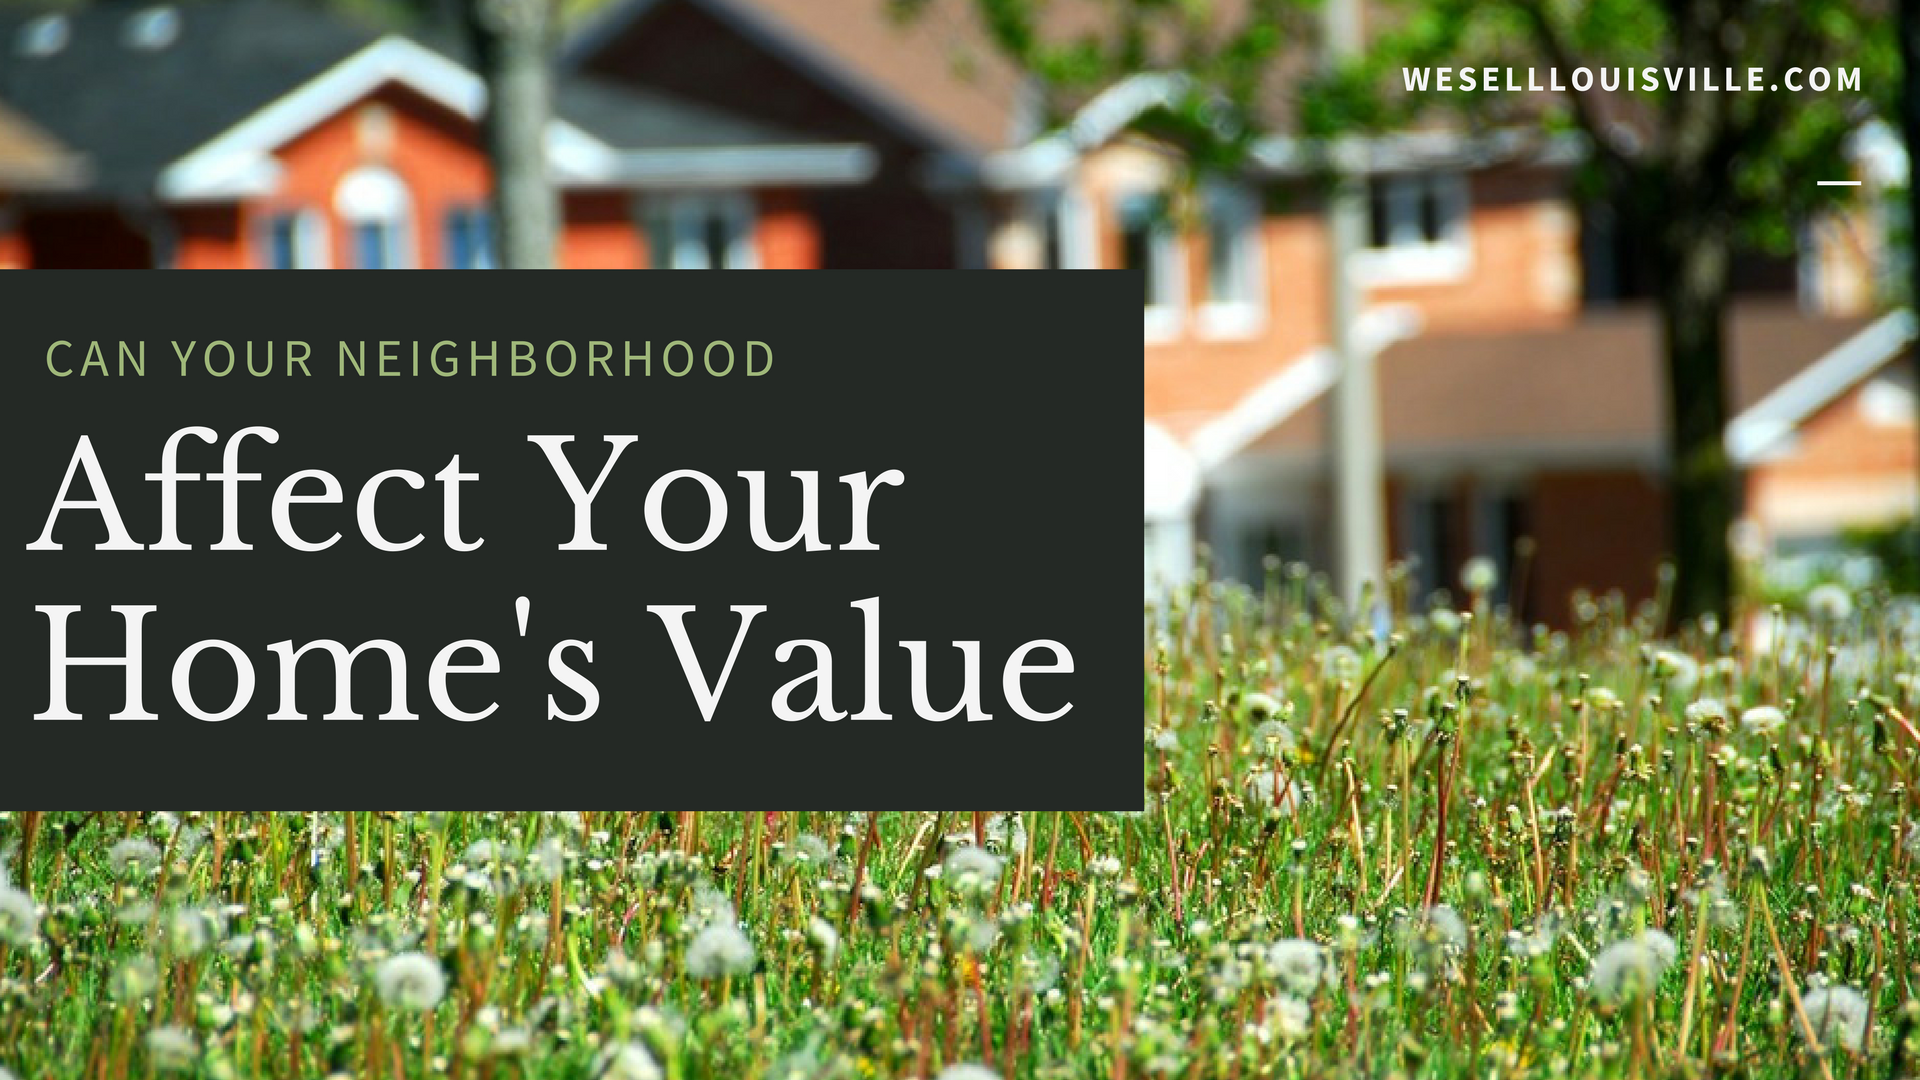 IS your neighborhood affecting your property value